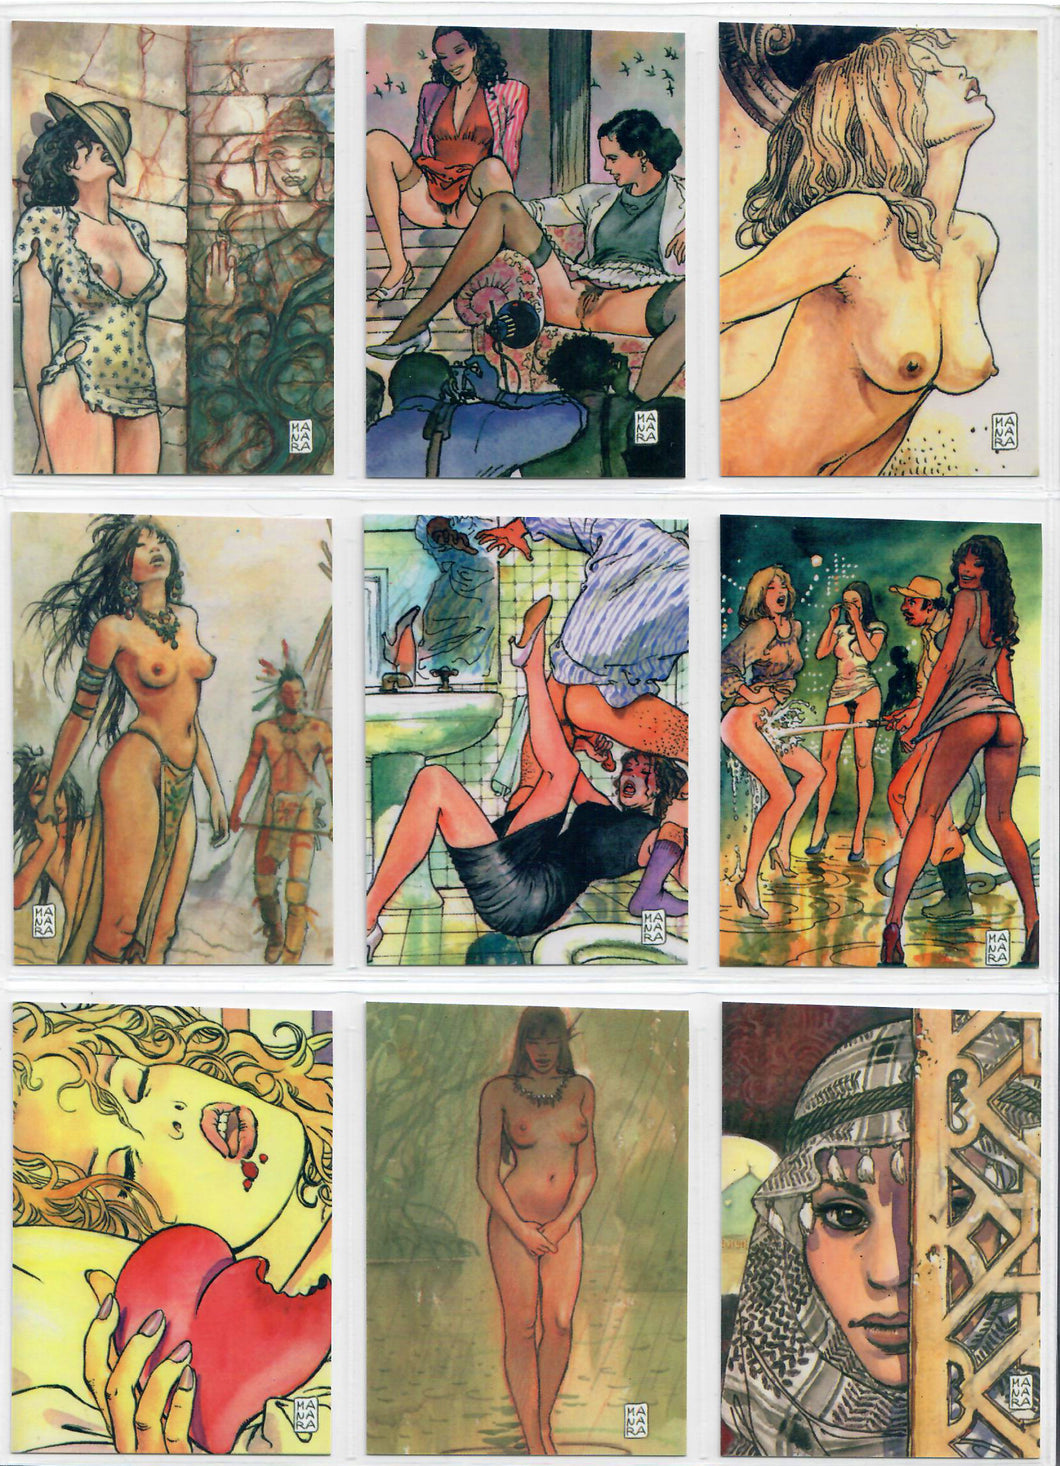 Milo Manara - The Erotic Art of - Complete 45 Series 1 Card Set - Sound & Vision